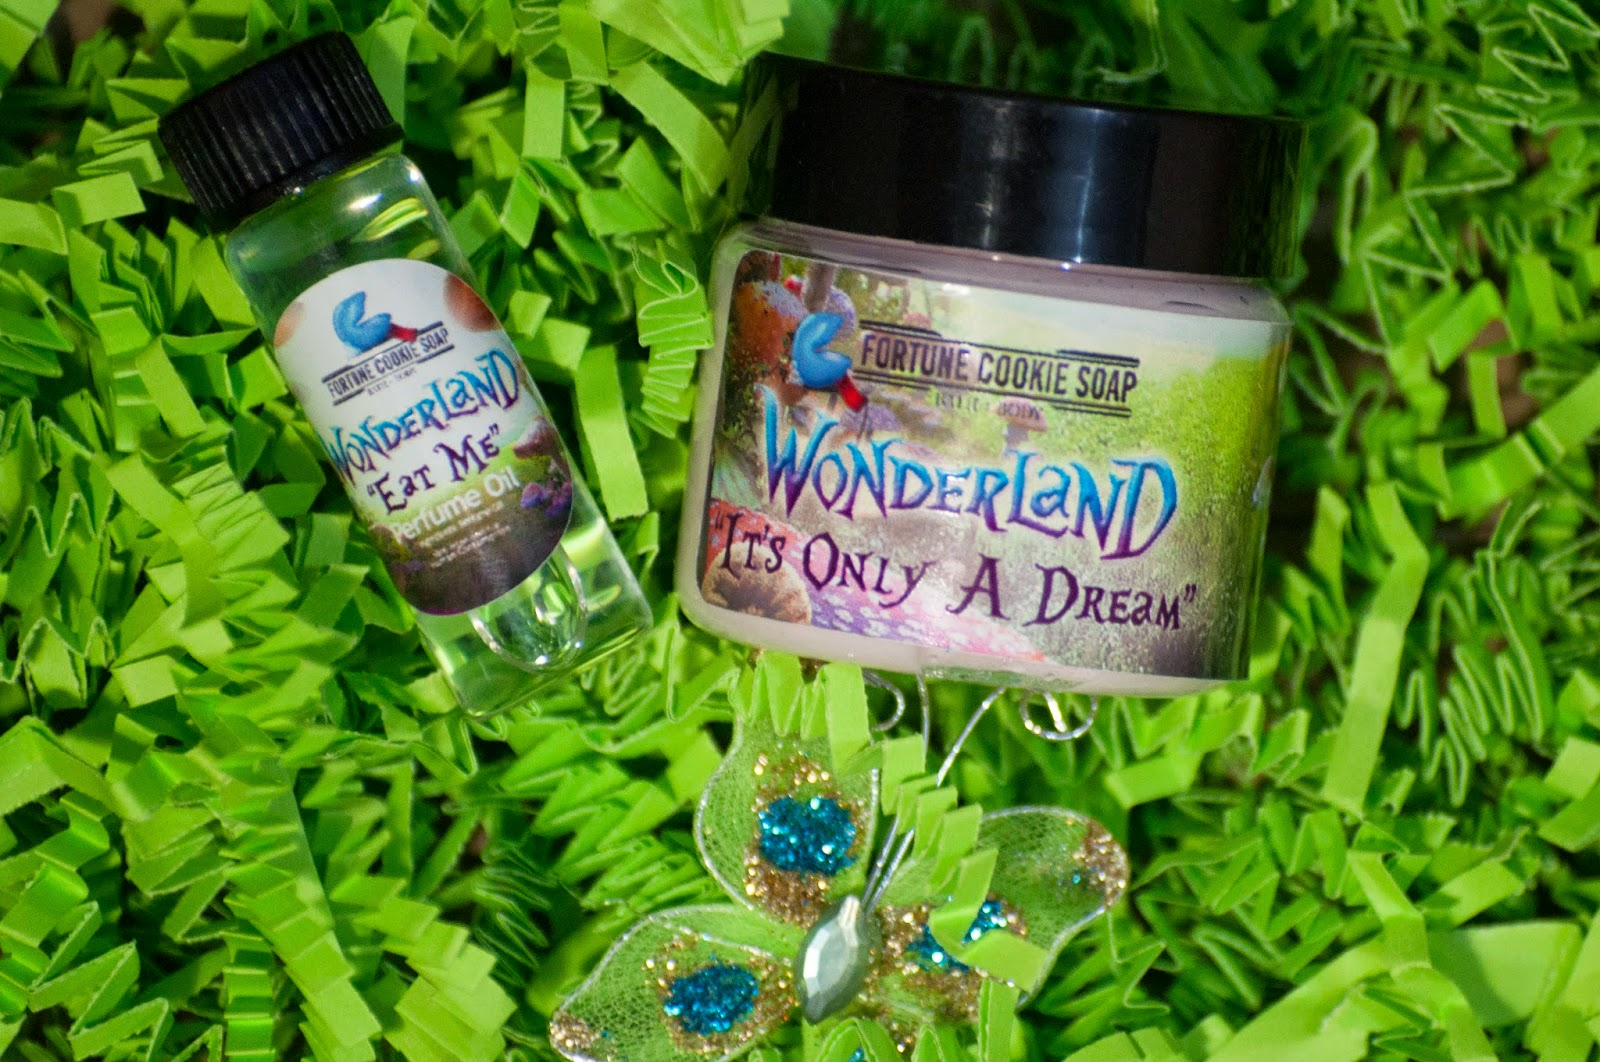 Glamor your Life: Fortune Cookie Soap Spring Box Review ...